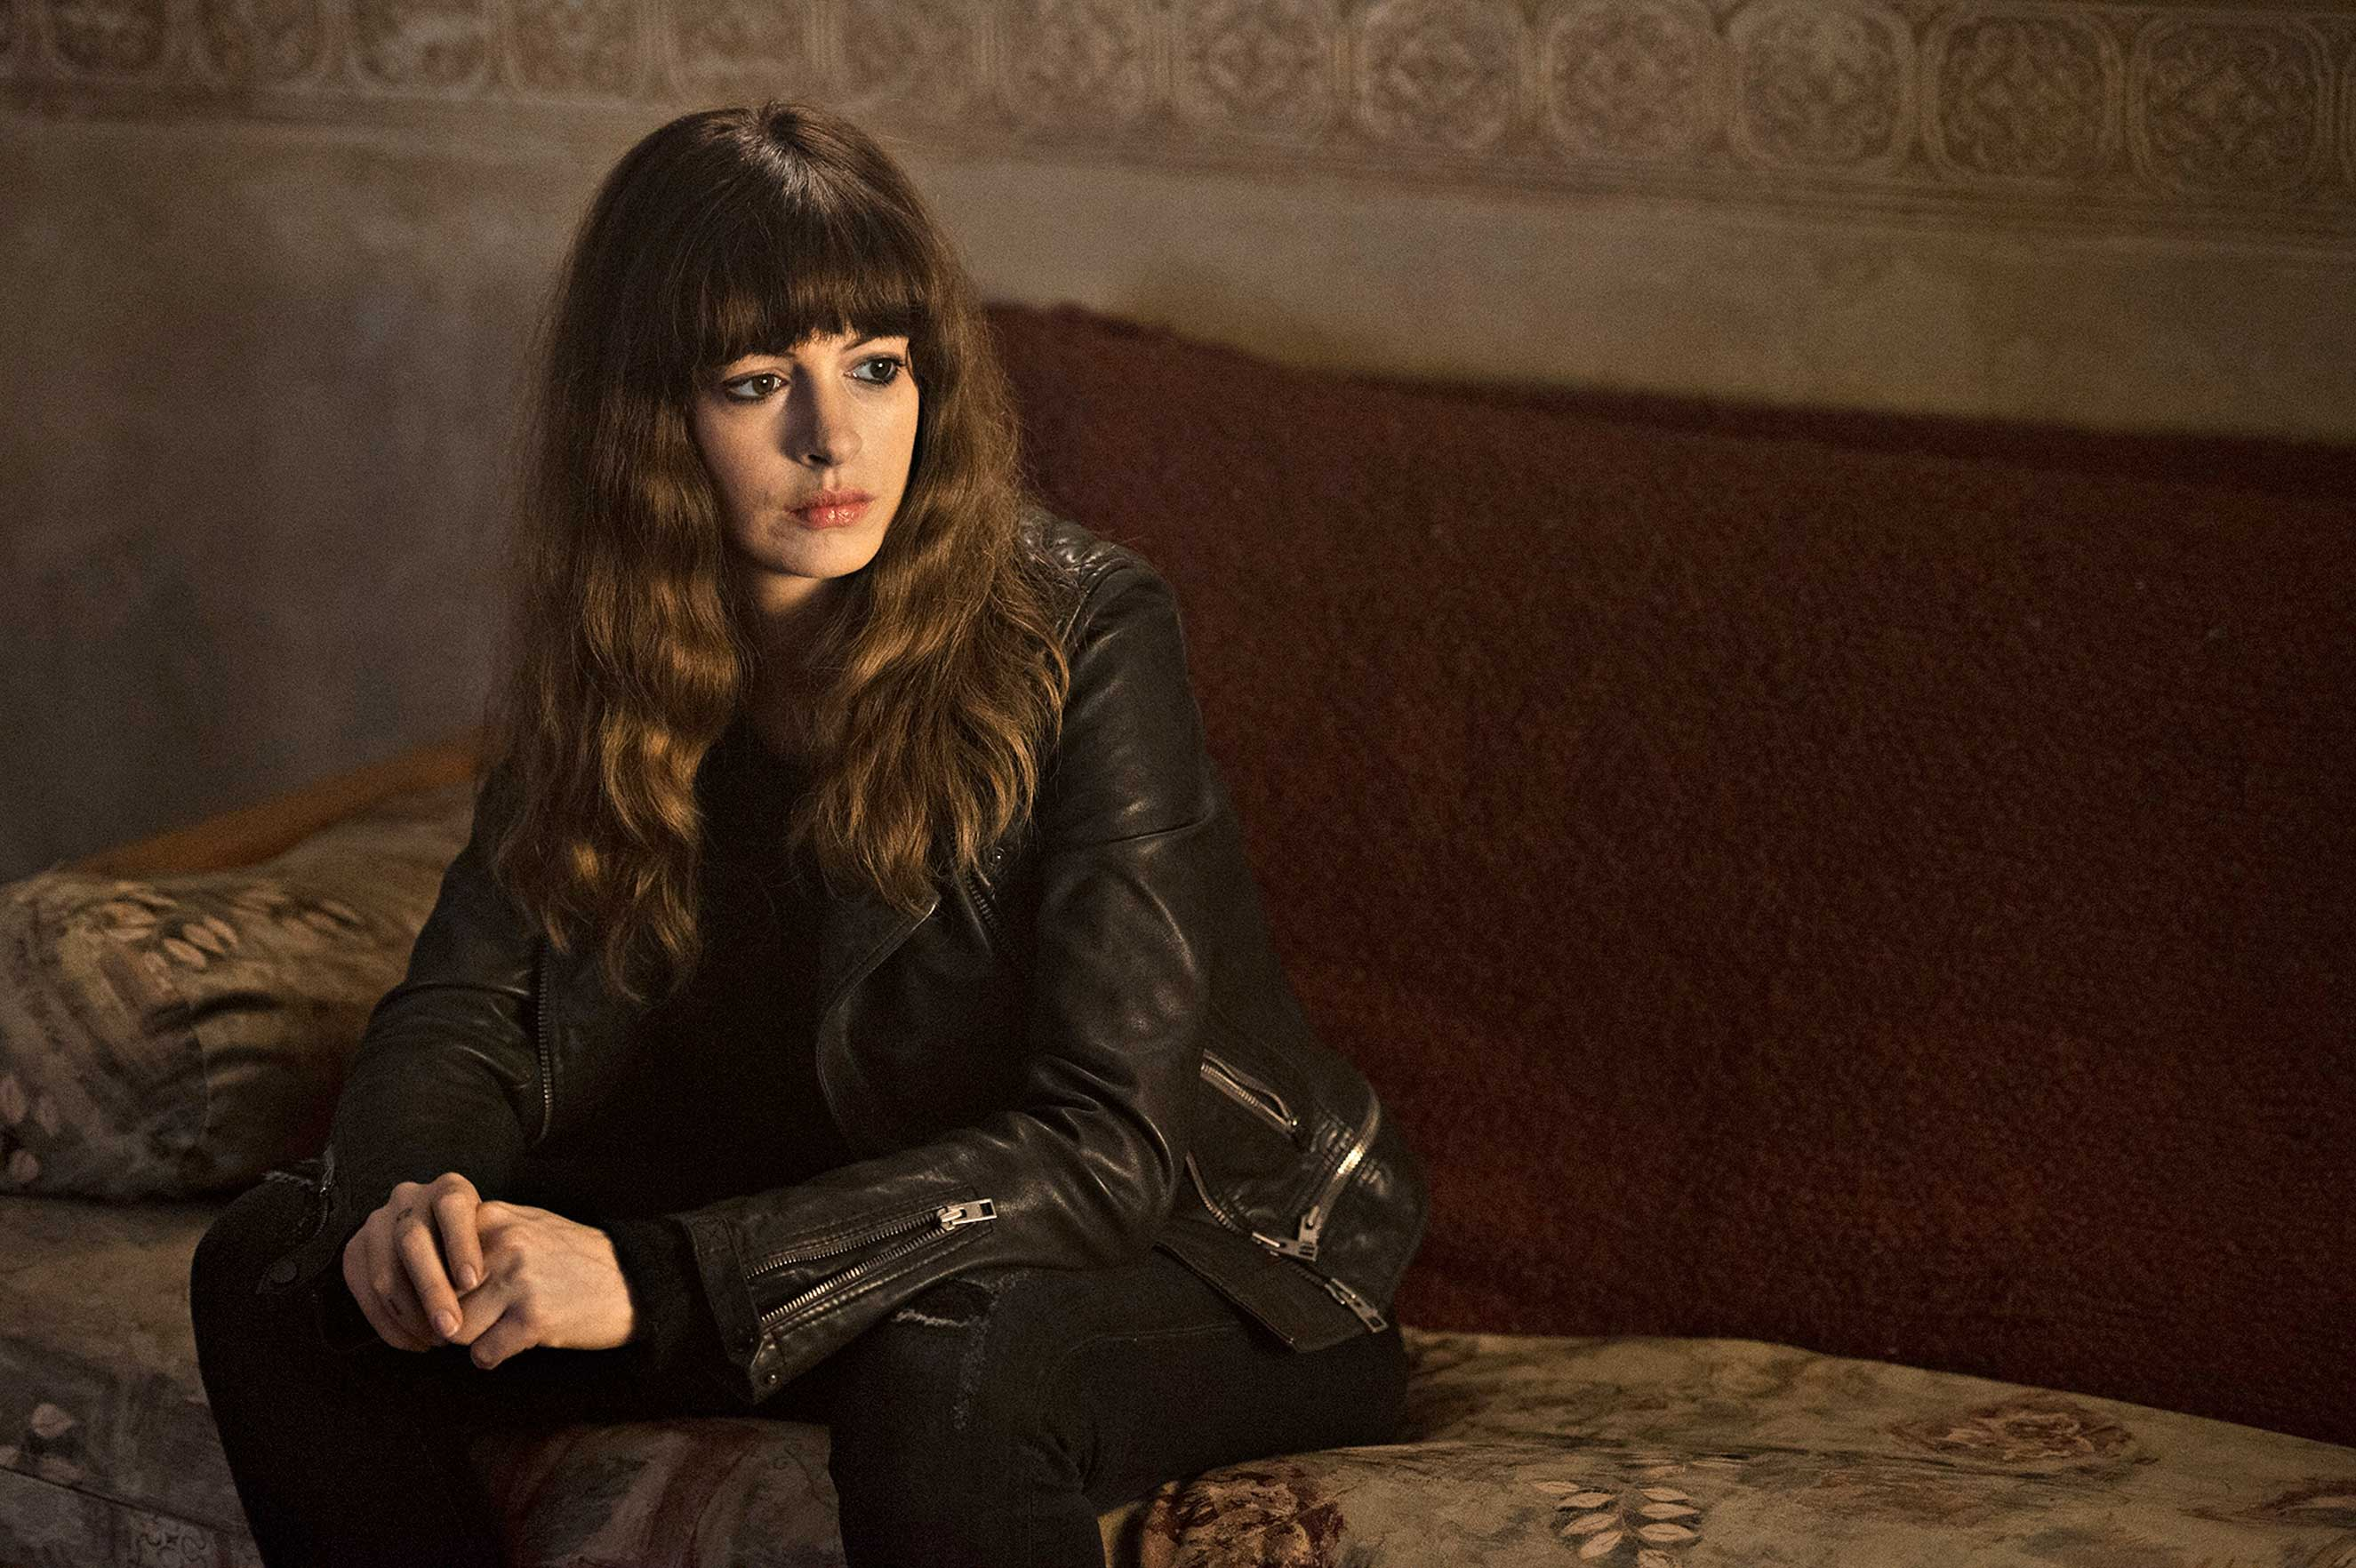 Hathaway prepares to confront the monster within in Colossal